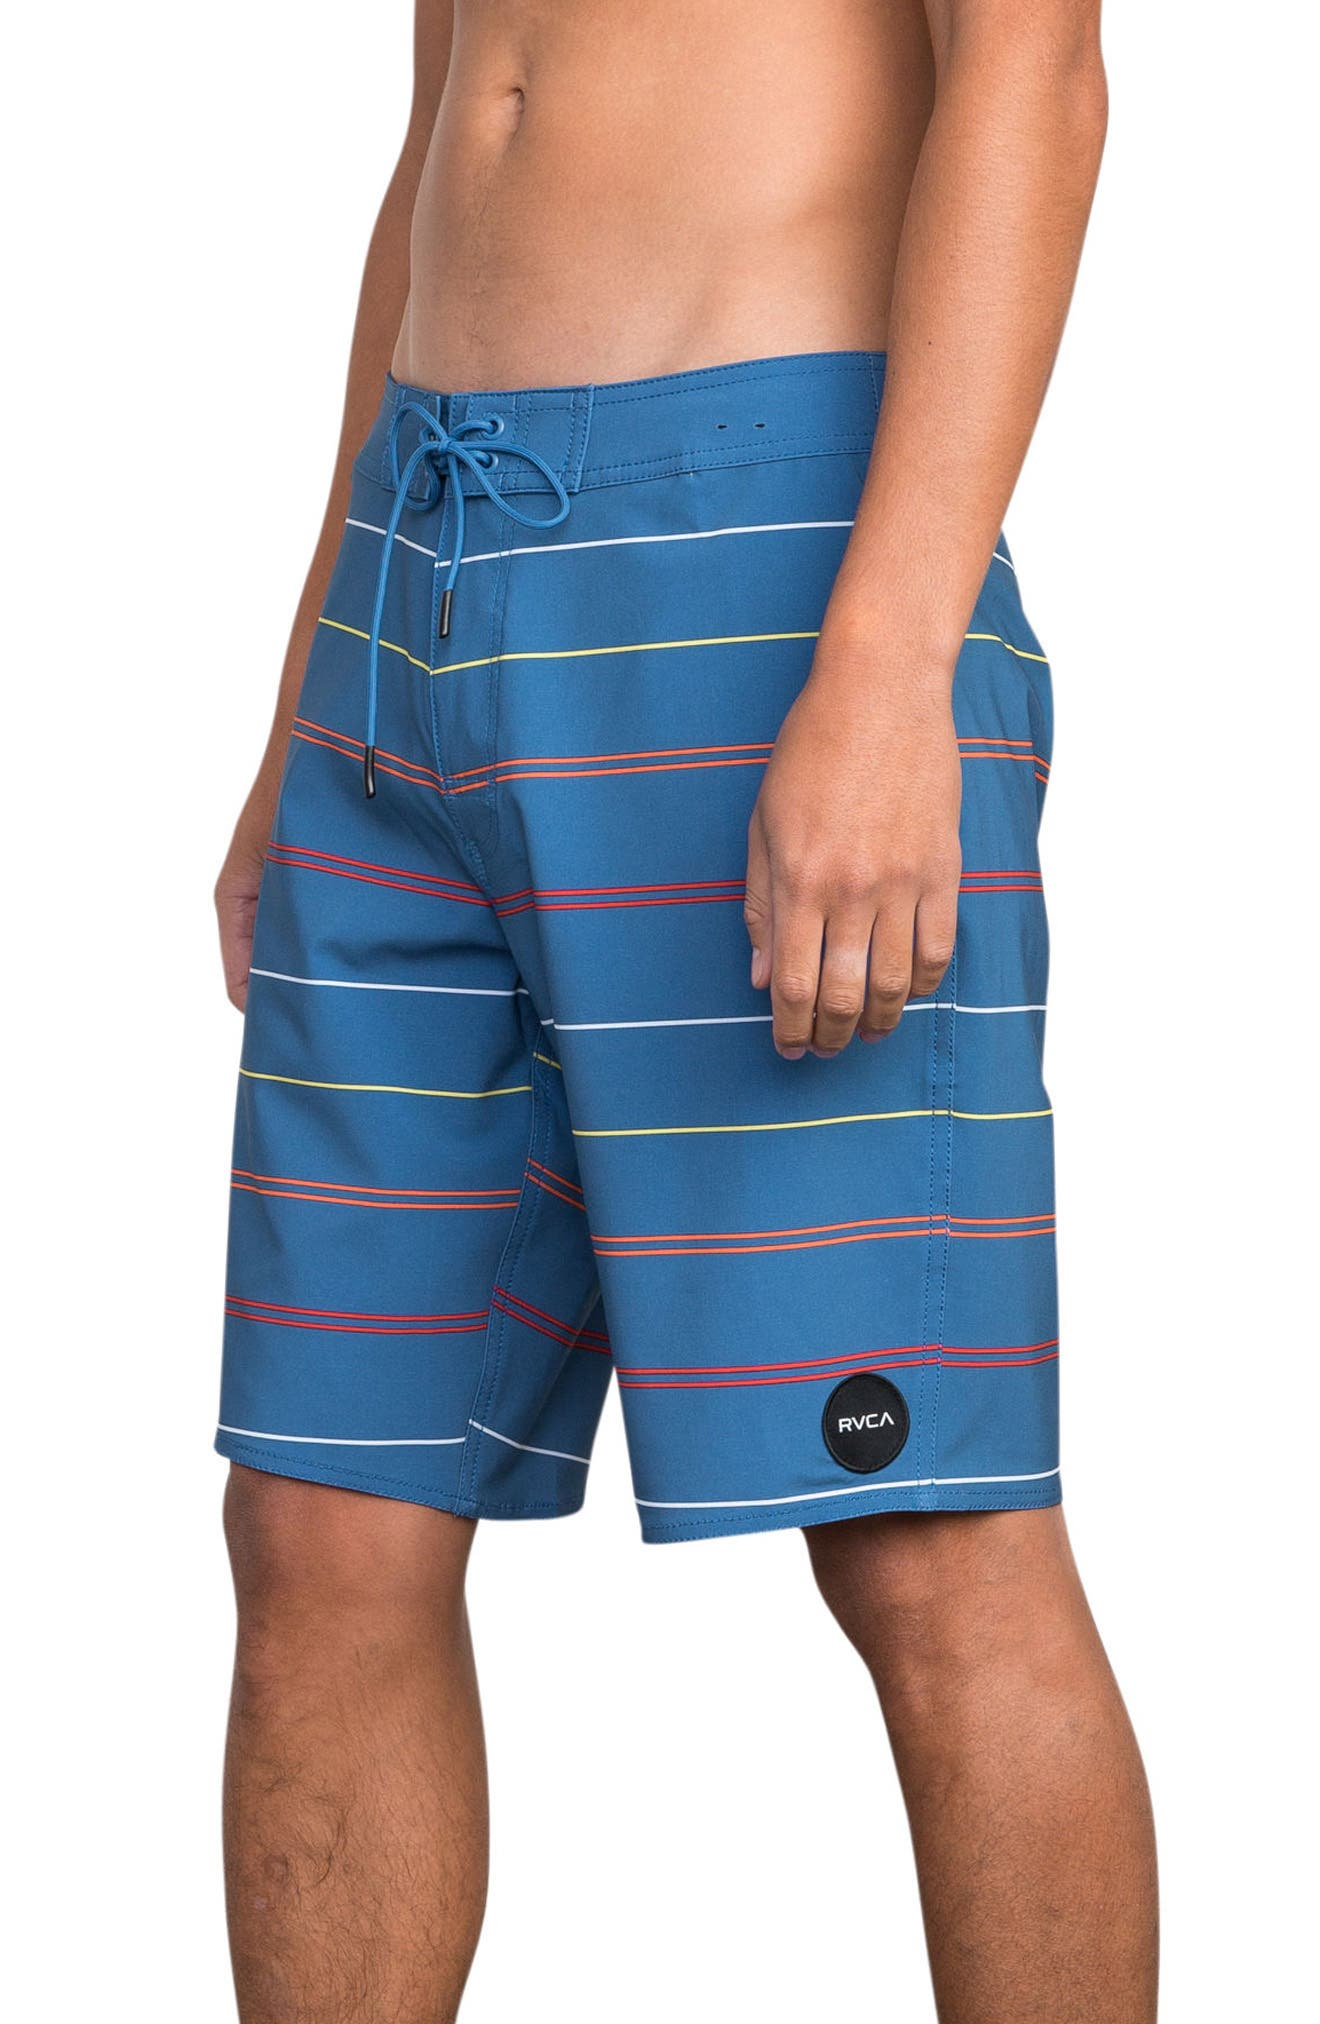 Middle Swim Trunks,                             Alternate thumbnail 3, color,                             COBALT